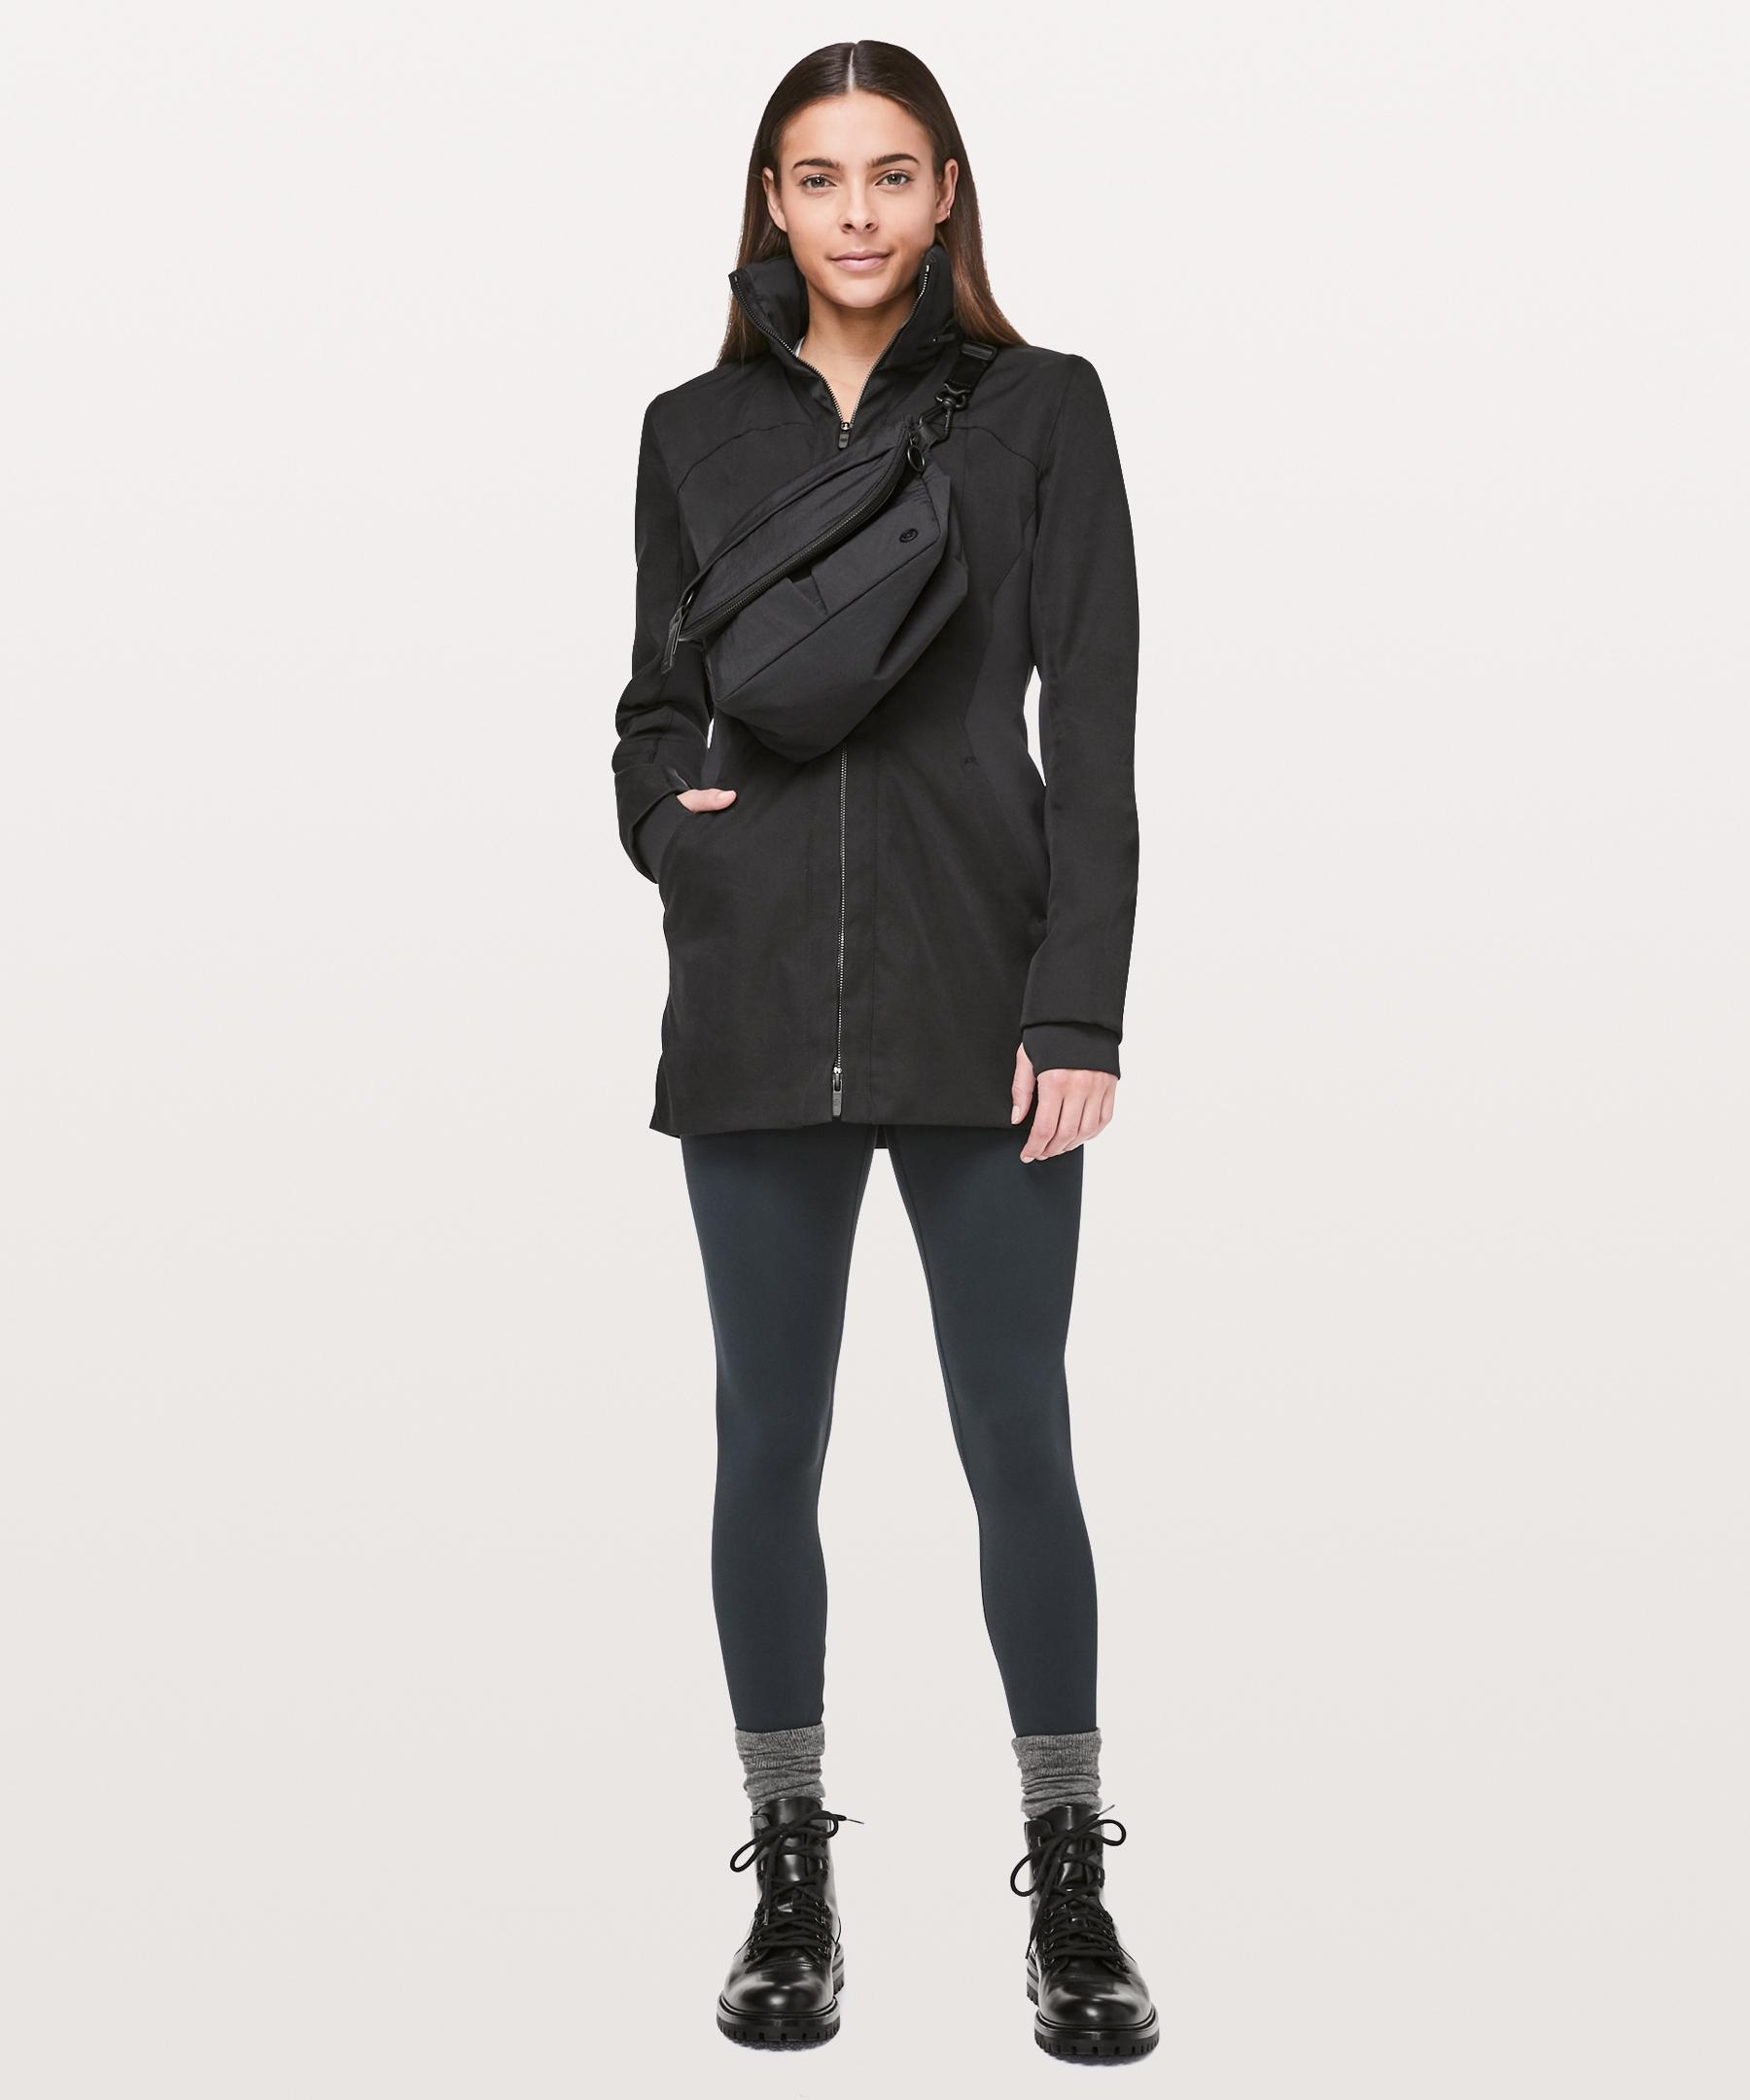 f51d04e60a Lyst - lululemon athletica Like A Glove Jacket in Black